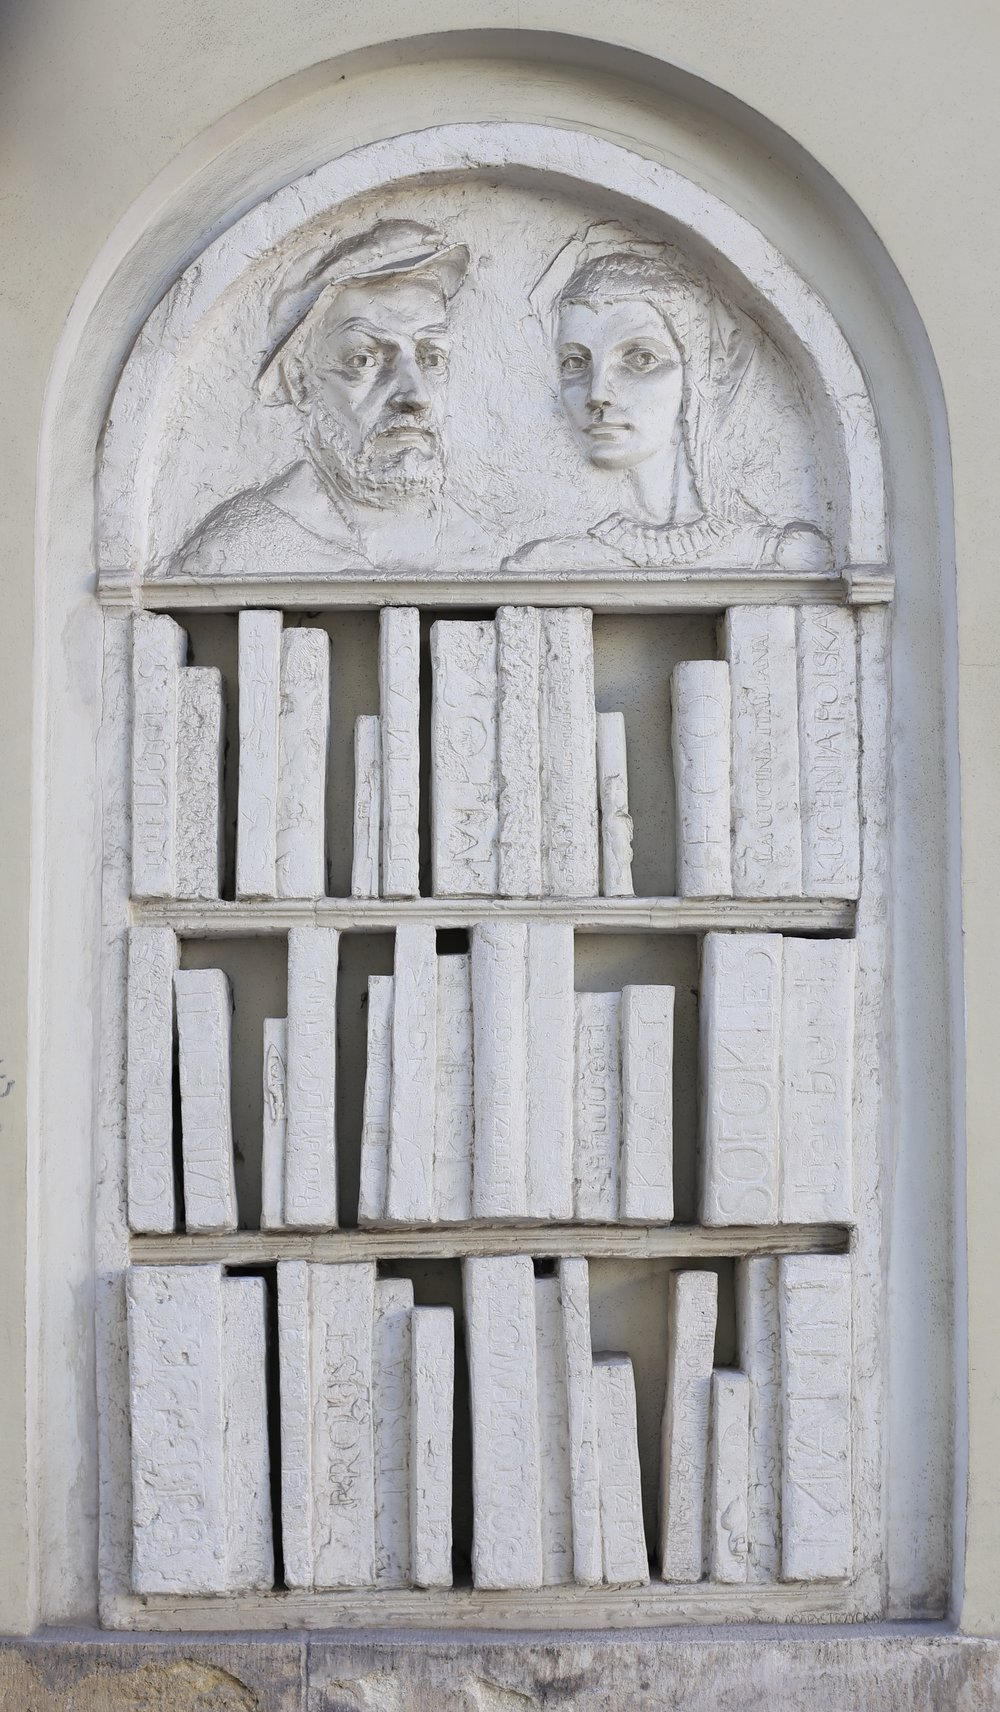 A stone bookcase watched over by two stone guardians, on a wall in Krakow.